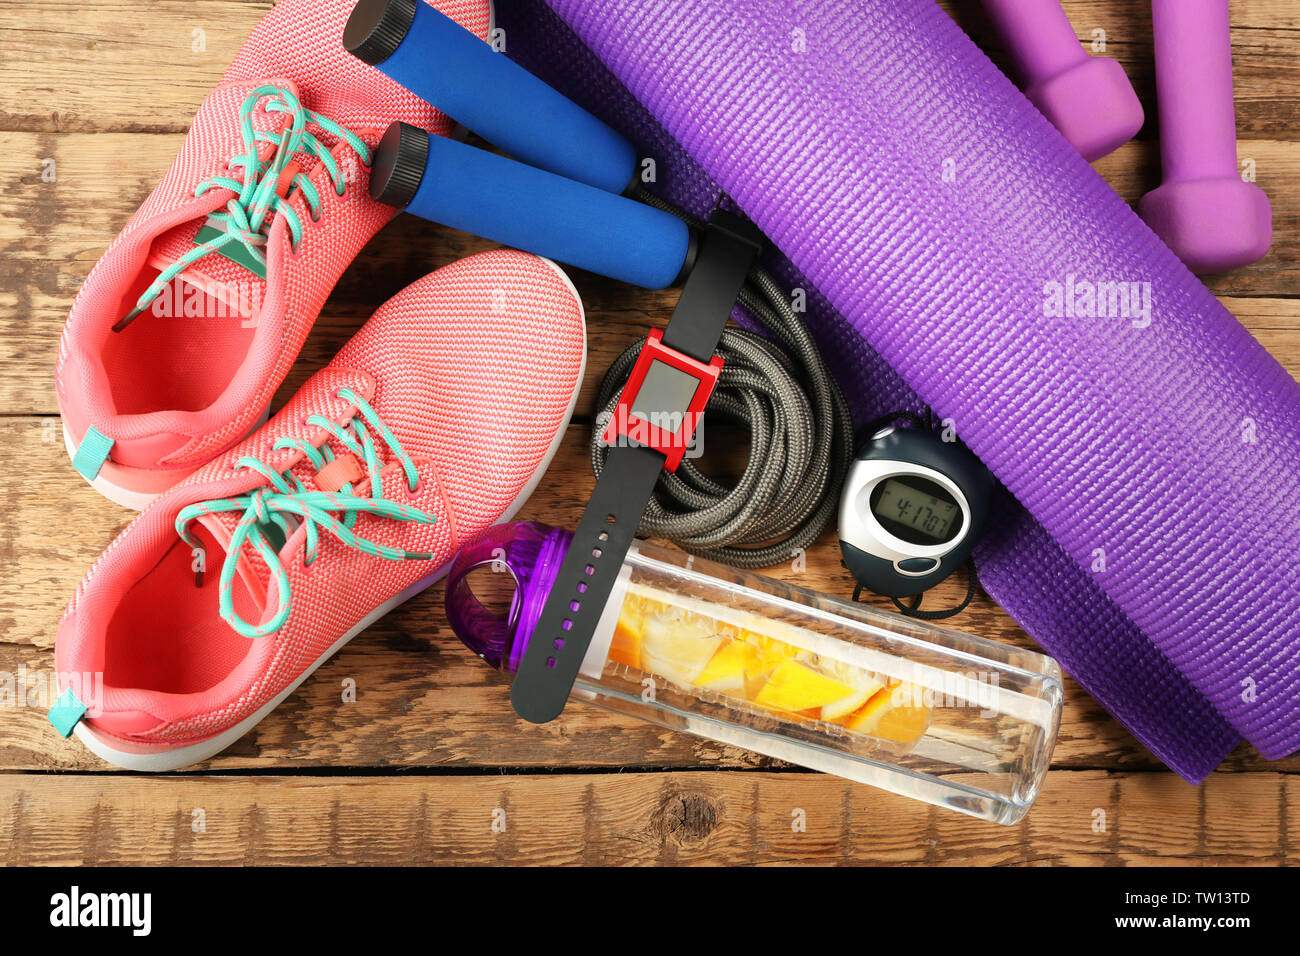 Outfit for training on wooden background - Stock Image